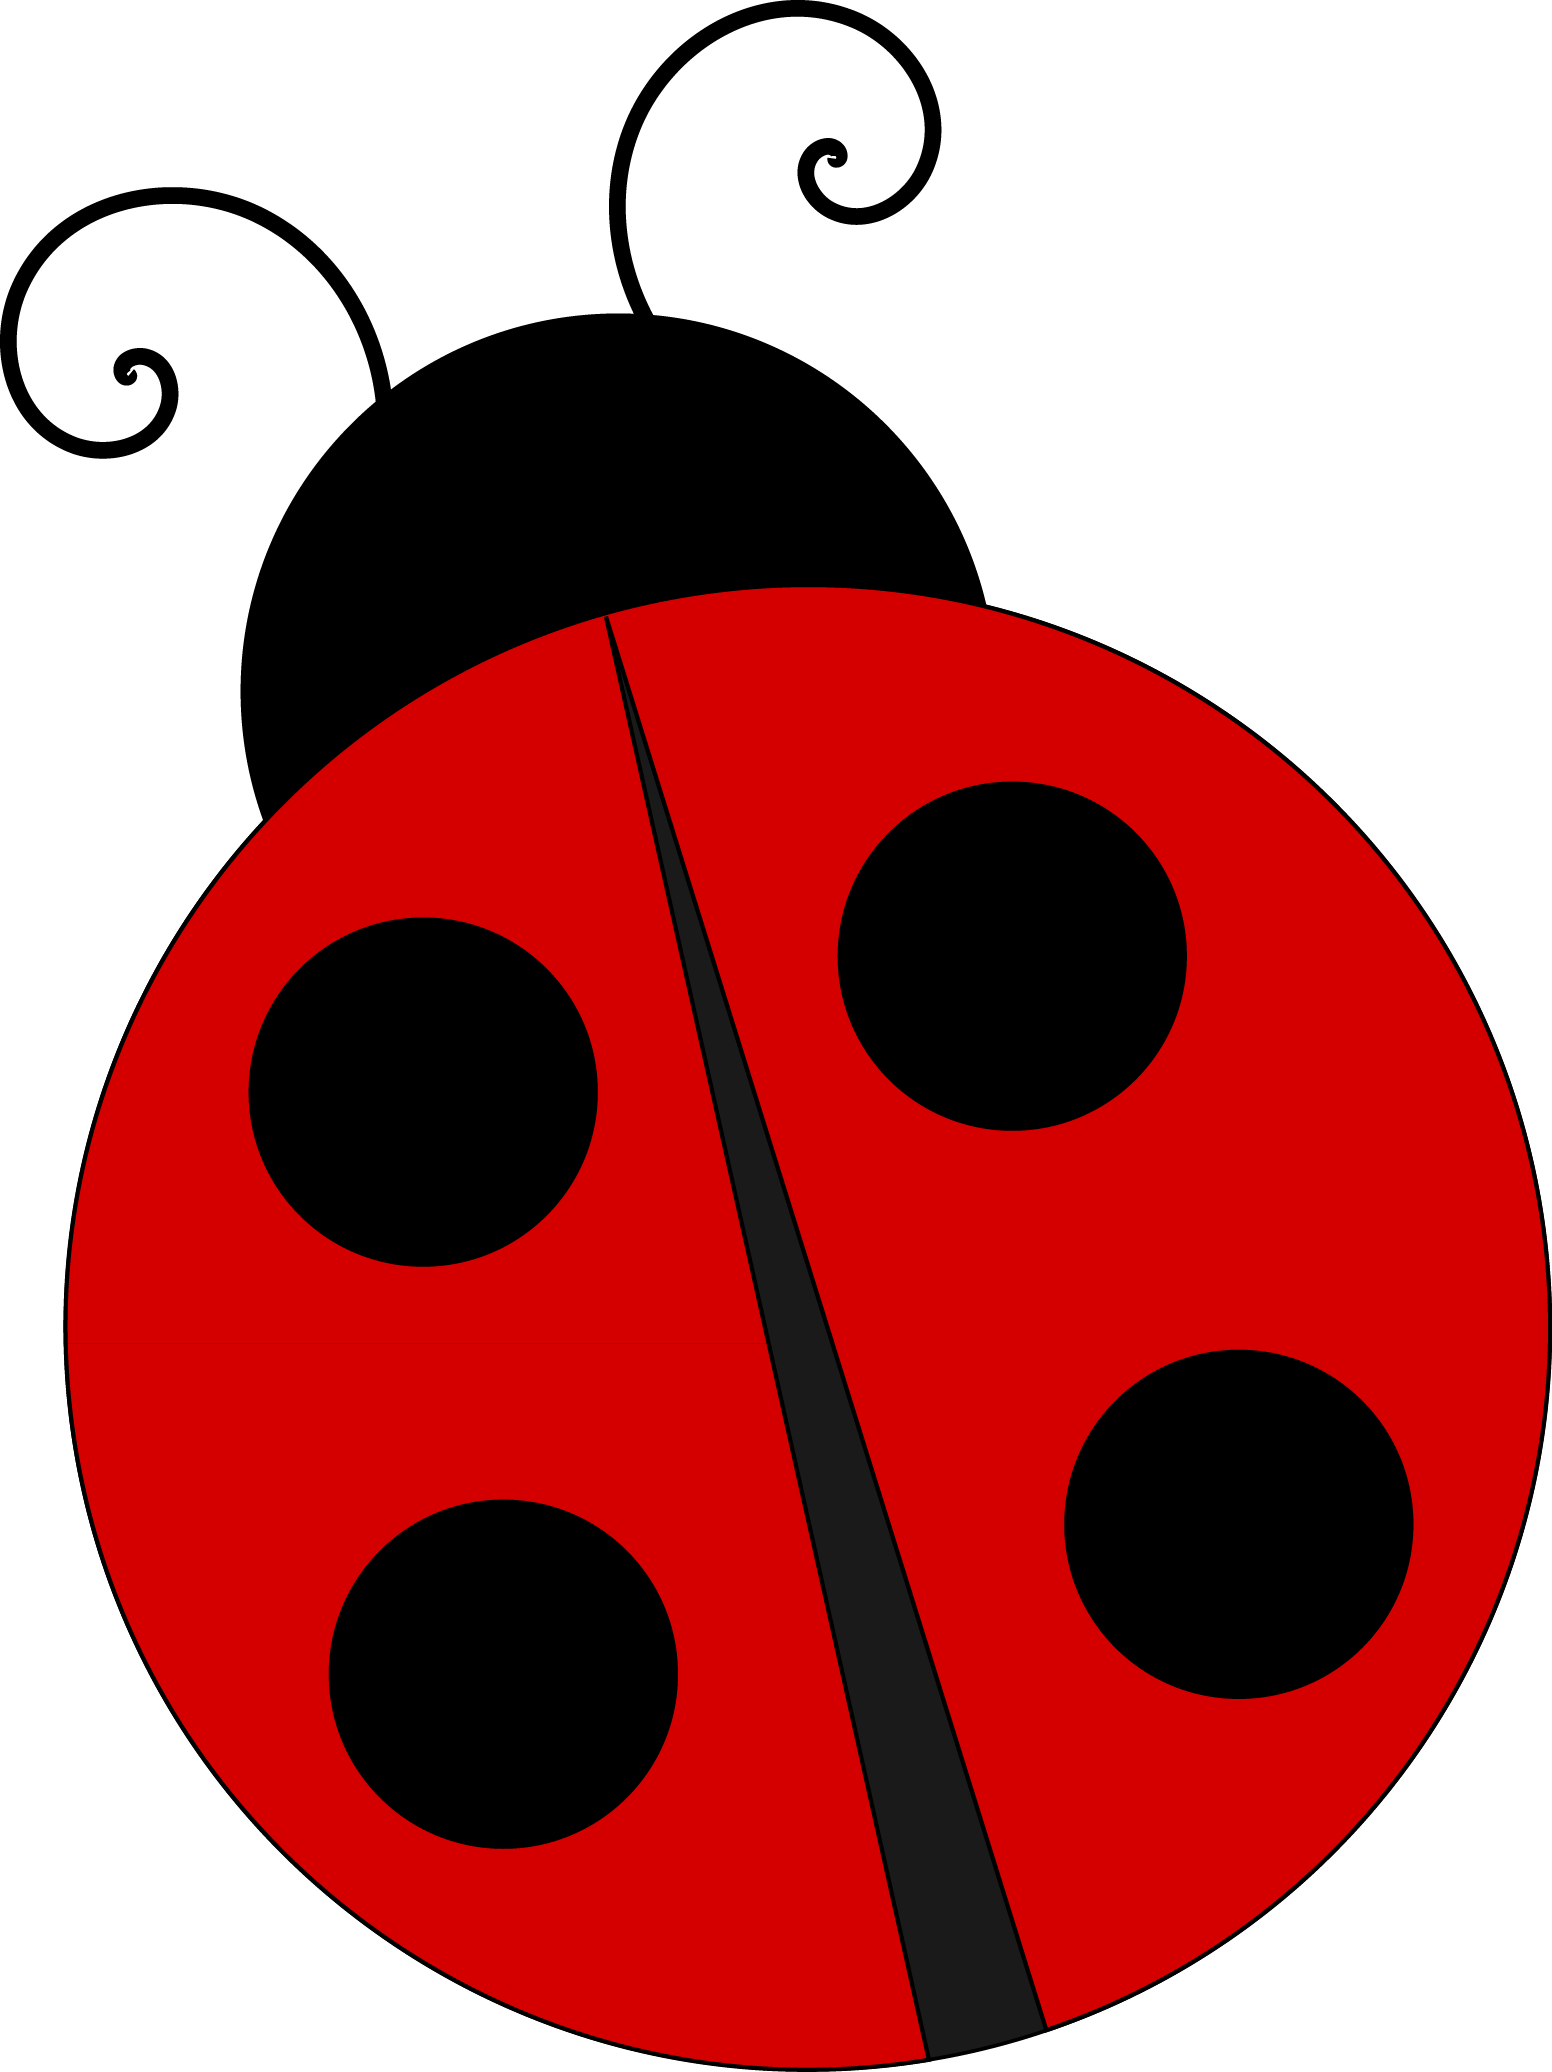 - Ladybird Clip Art - Ladybug Vector Png D #1509353 - PNG Images - PNGio